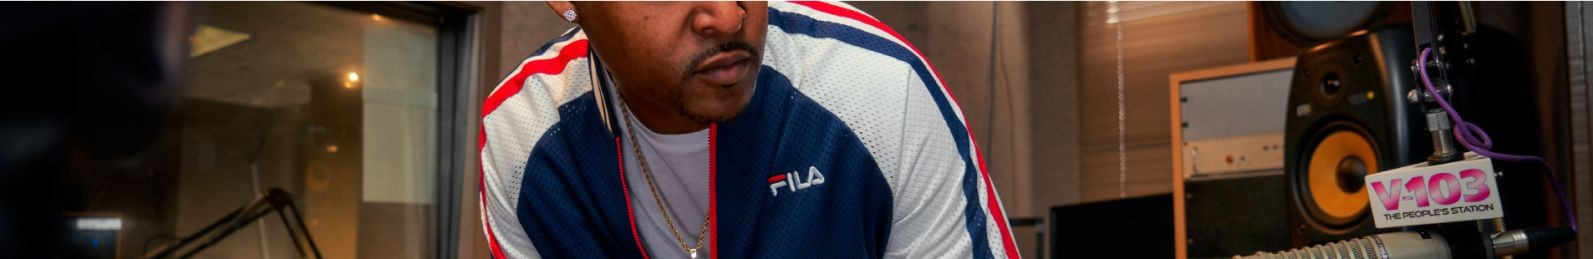 FILA Official Store